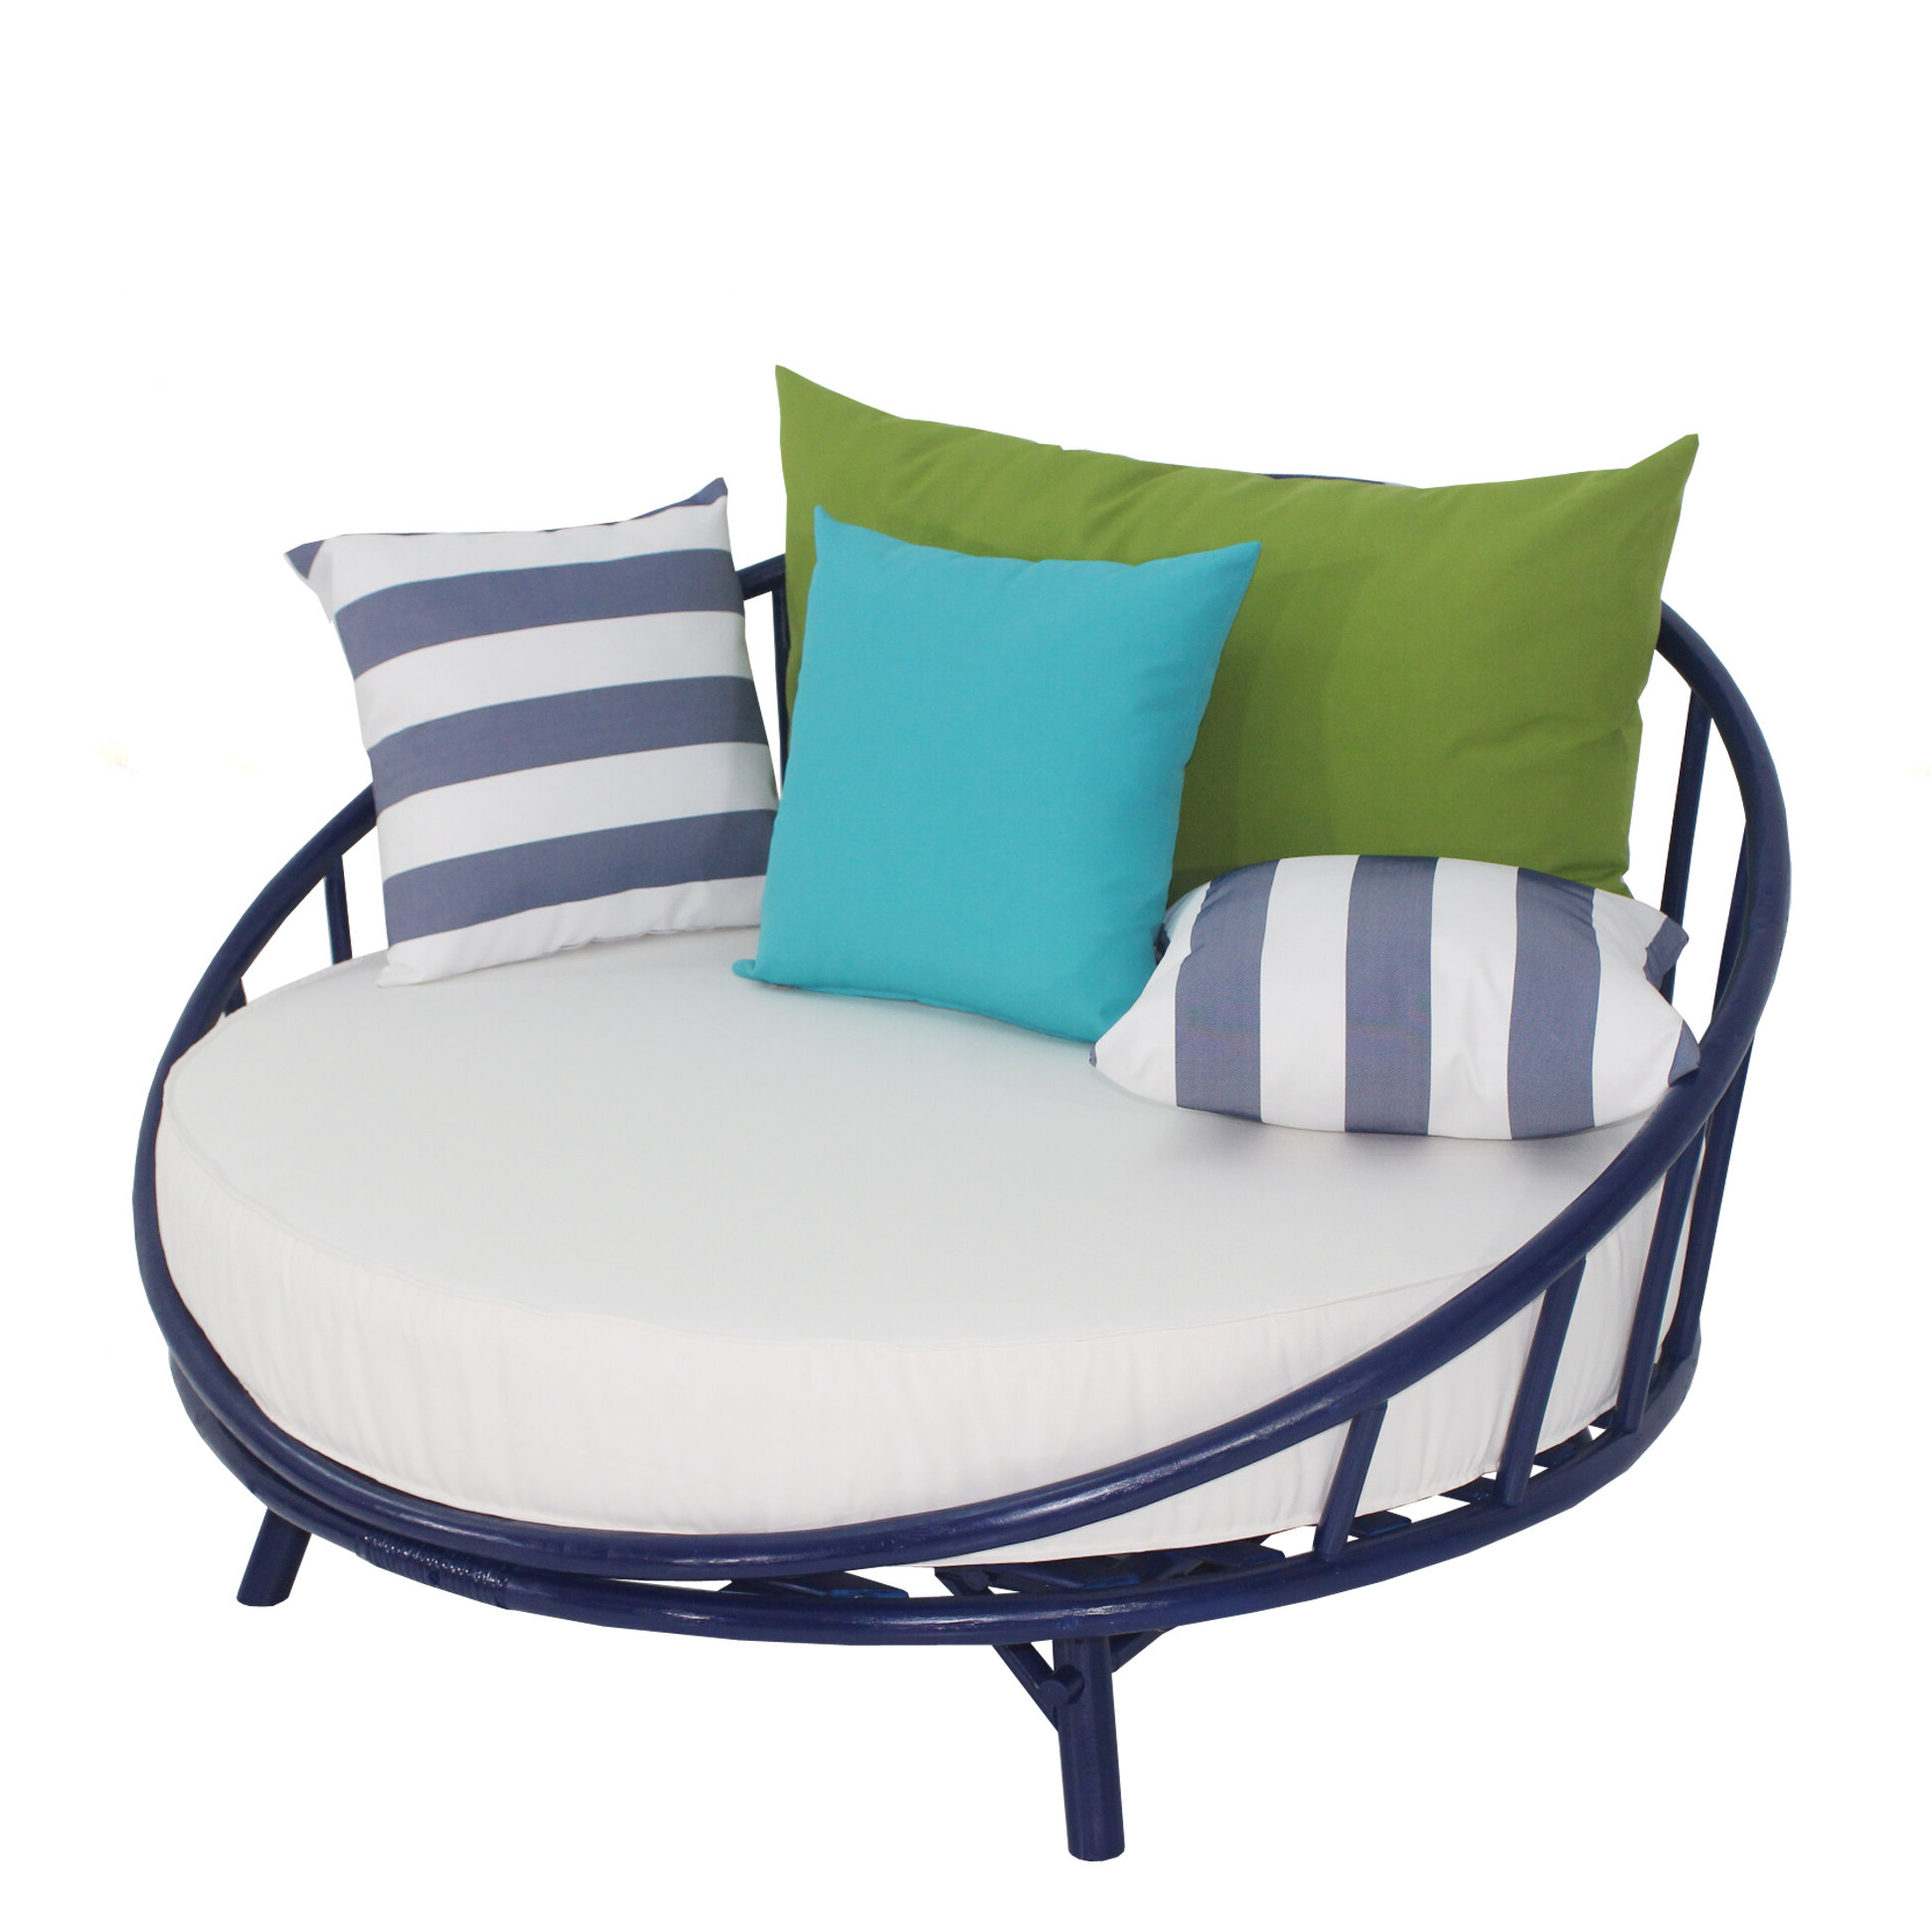 Olu Bamboo Large Round Patio Daybed With Cushions In Well Known Ellanti Patio Daybeds With Cushions (Gallery 12 of 25)